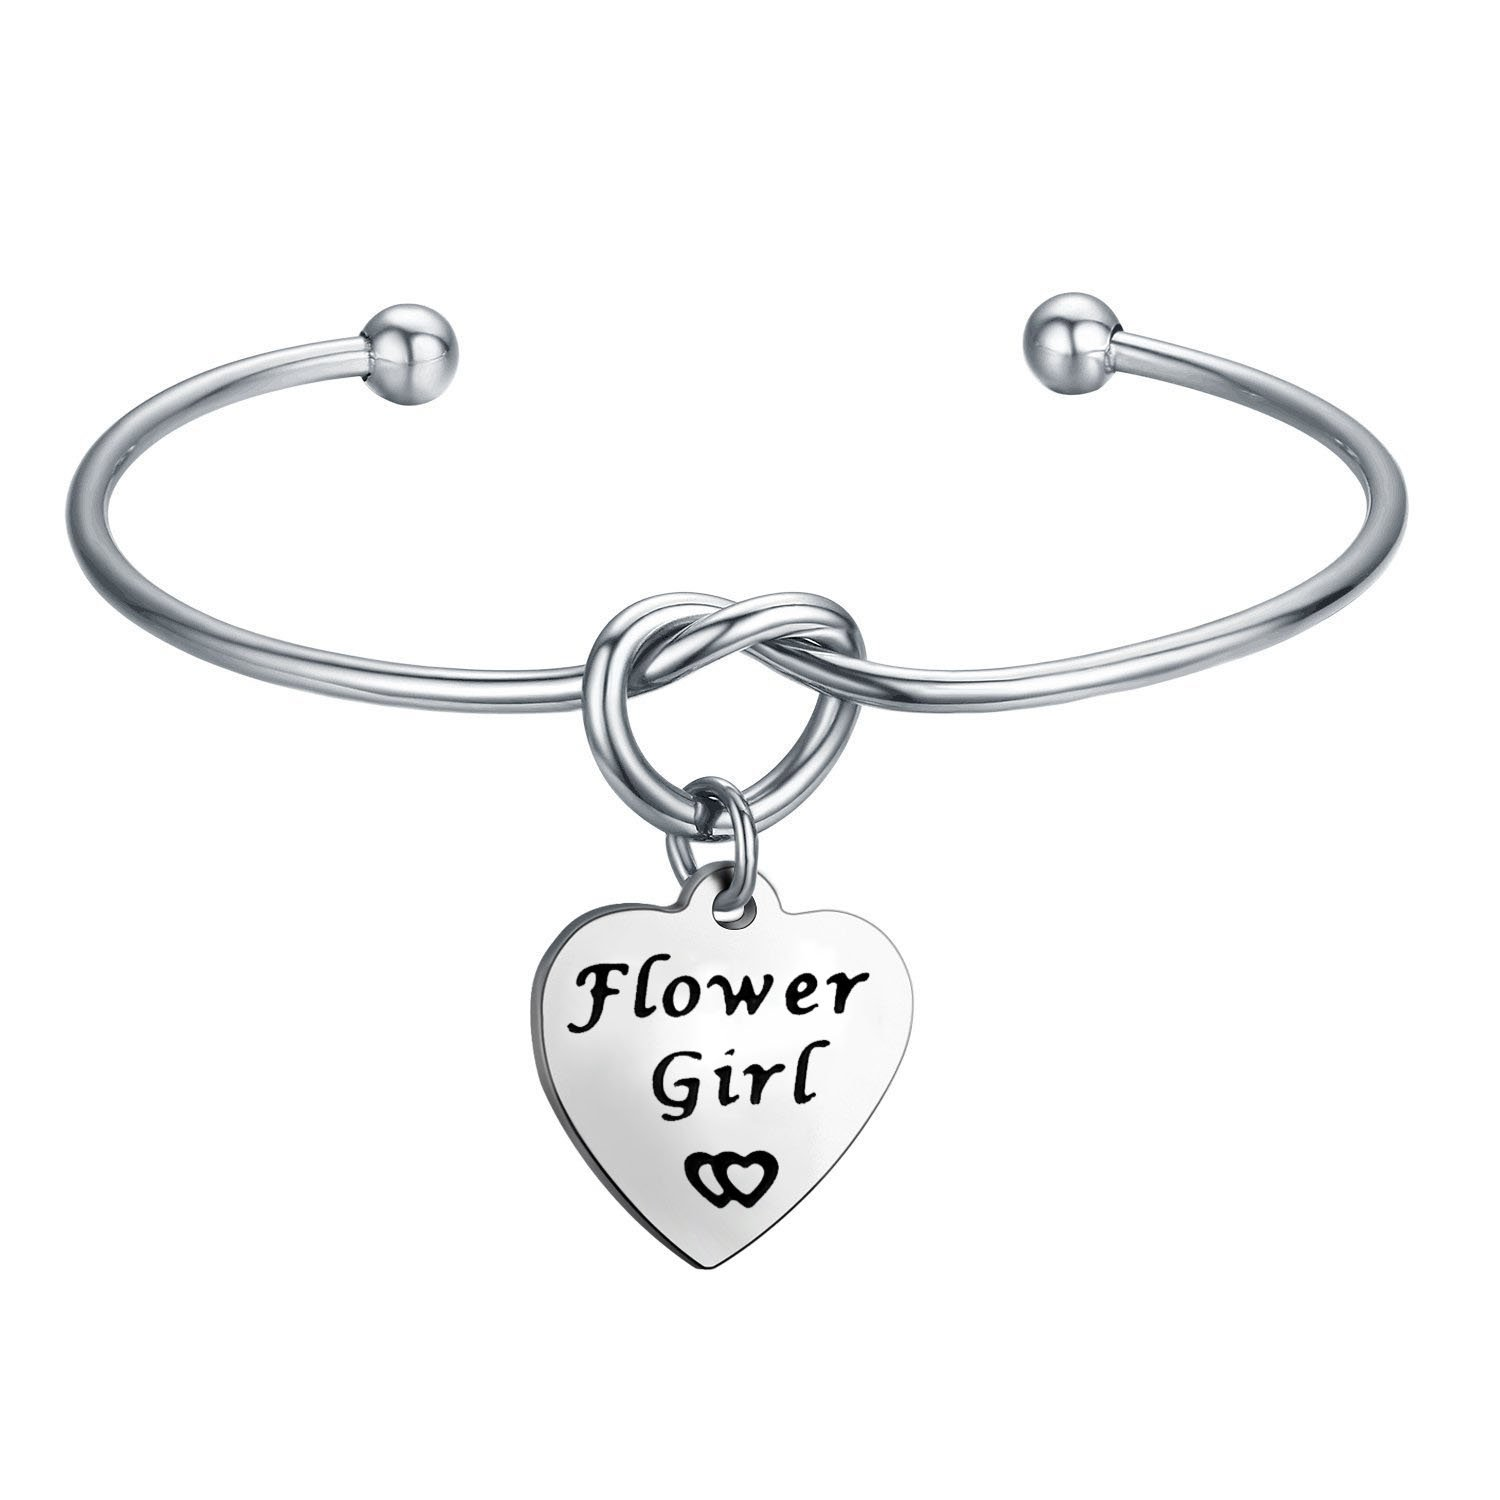 flowergirl love bracelet knot wedding dp com bangle for gift seiraa flower jewelry girl amazon